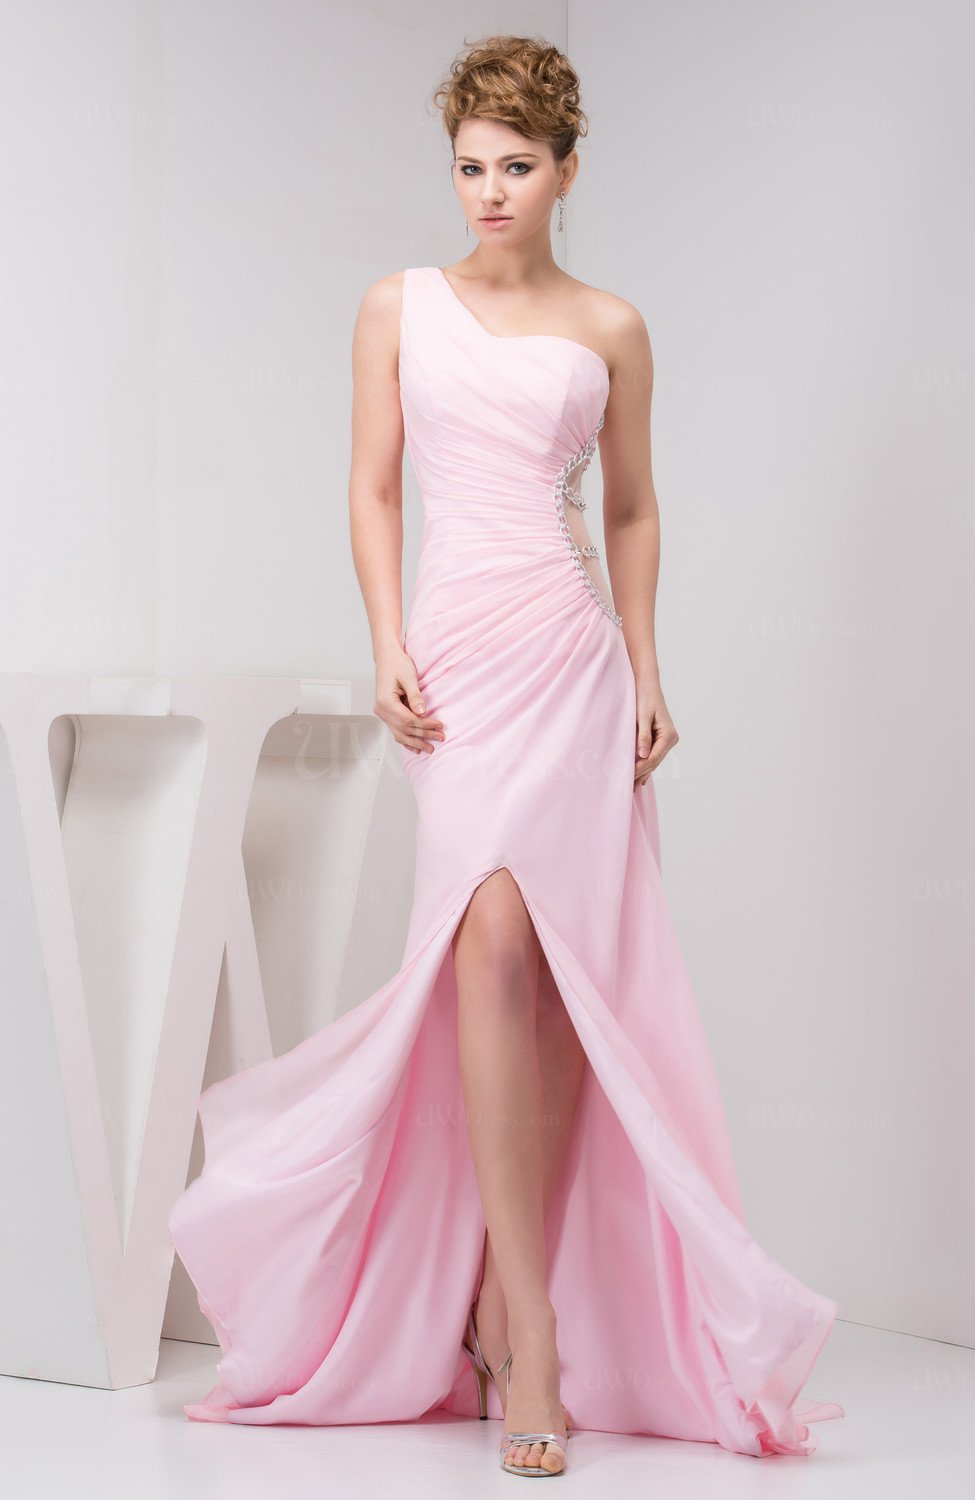 Baby Pink Long Wedding Guest Dress Inexpensive Fall One Shoulder ...